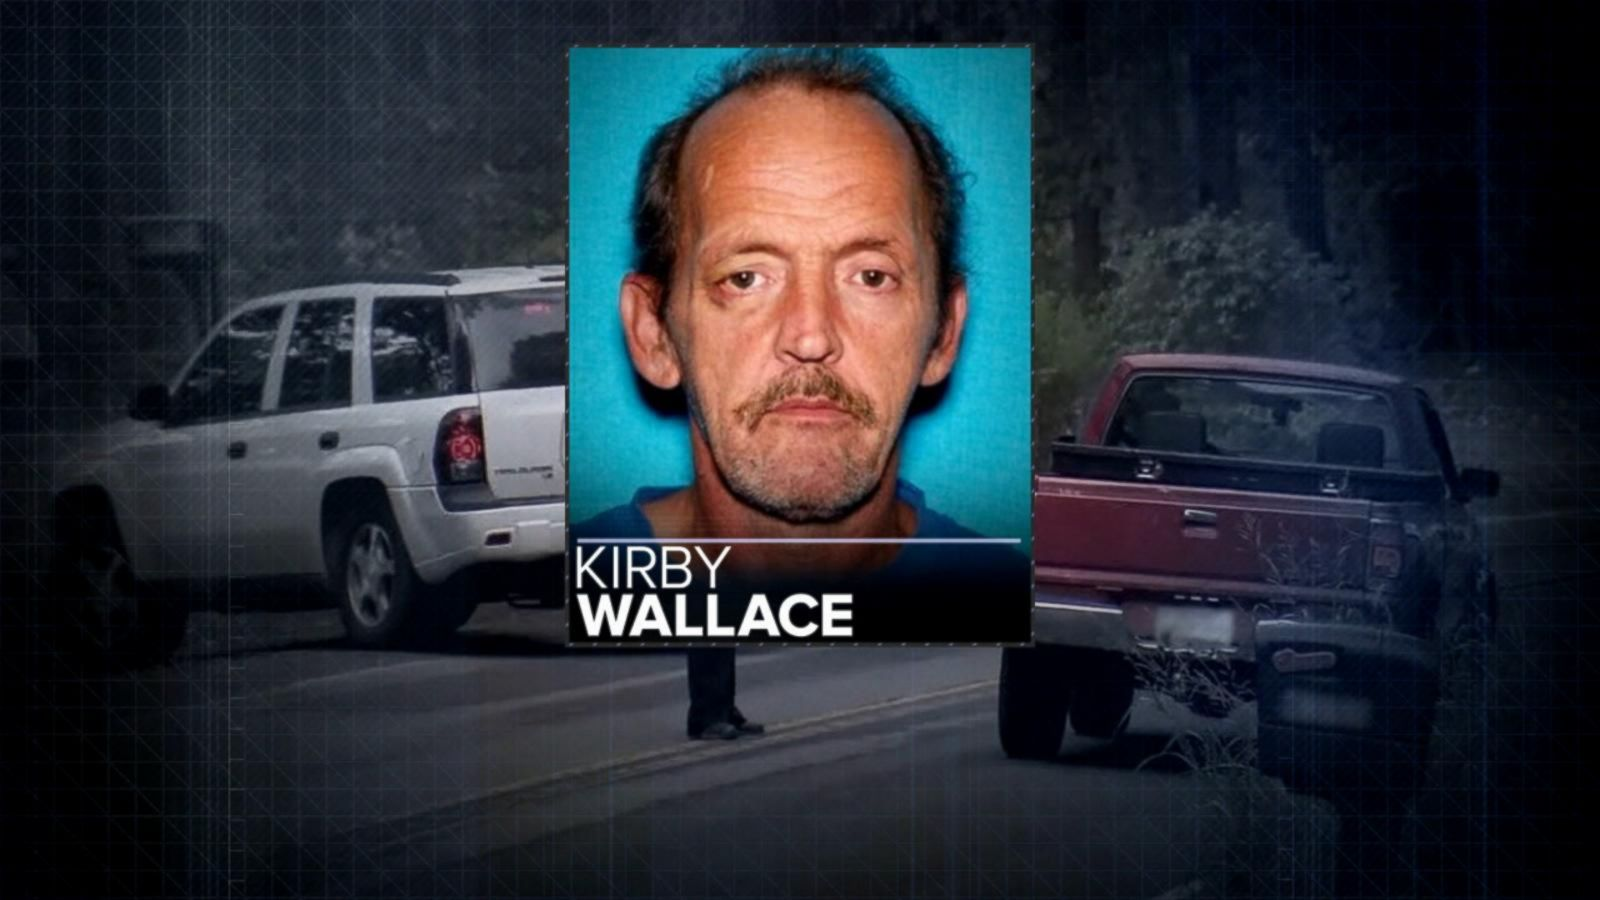 Double murder suspect on the run after string of violent crimes in